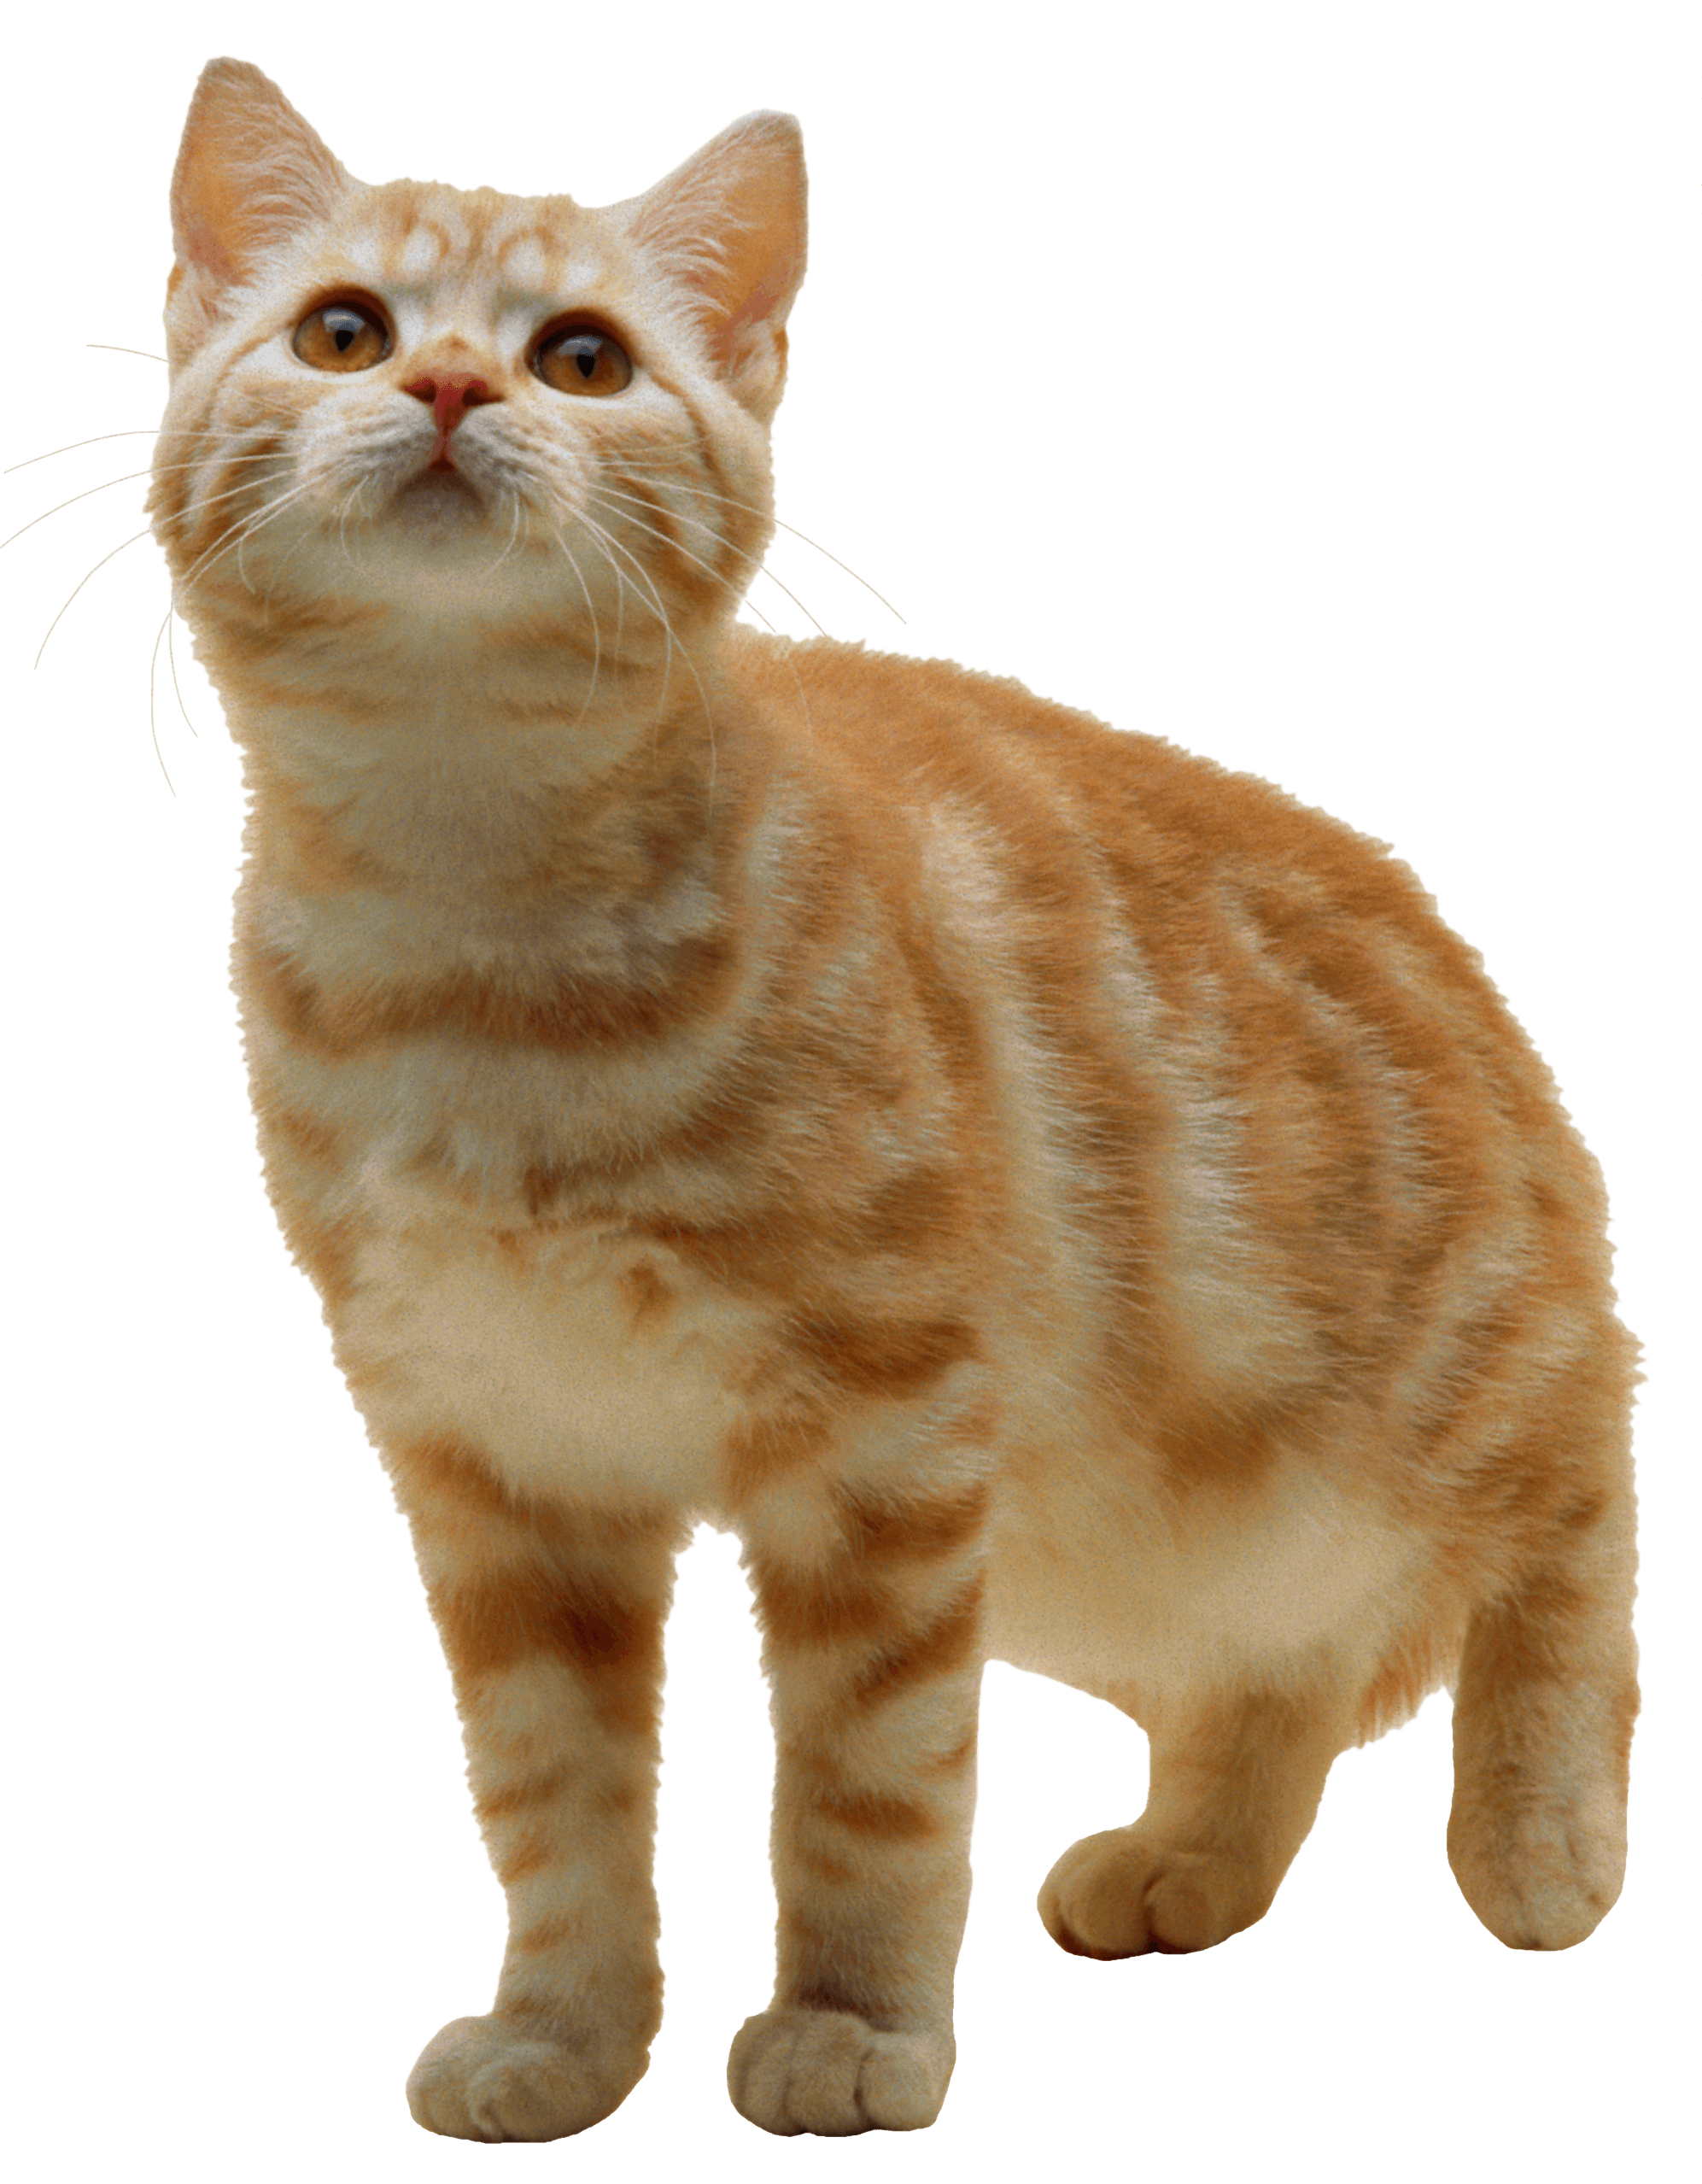 Tabbies cat clipart clipart freeuse download Cats png free images, download clipart freeuse download